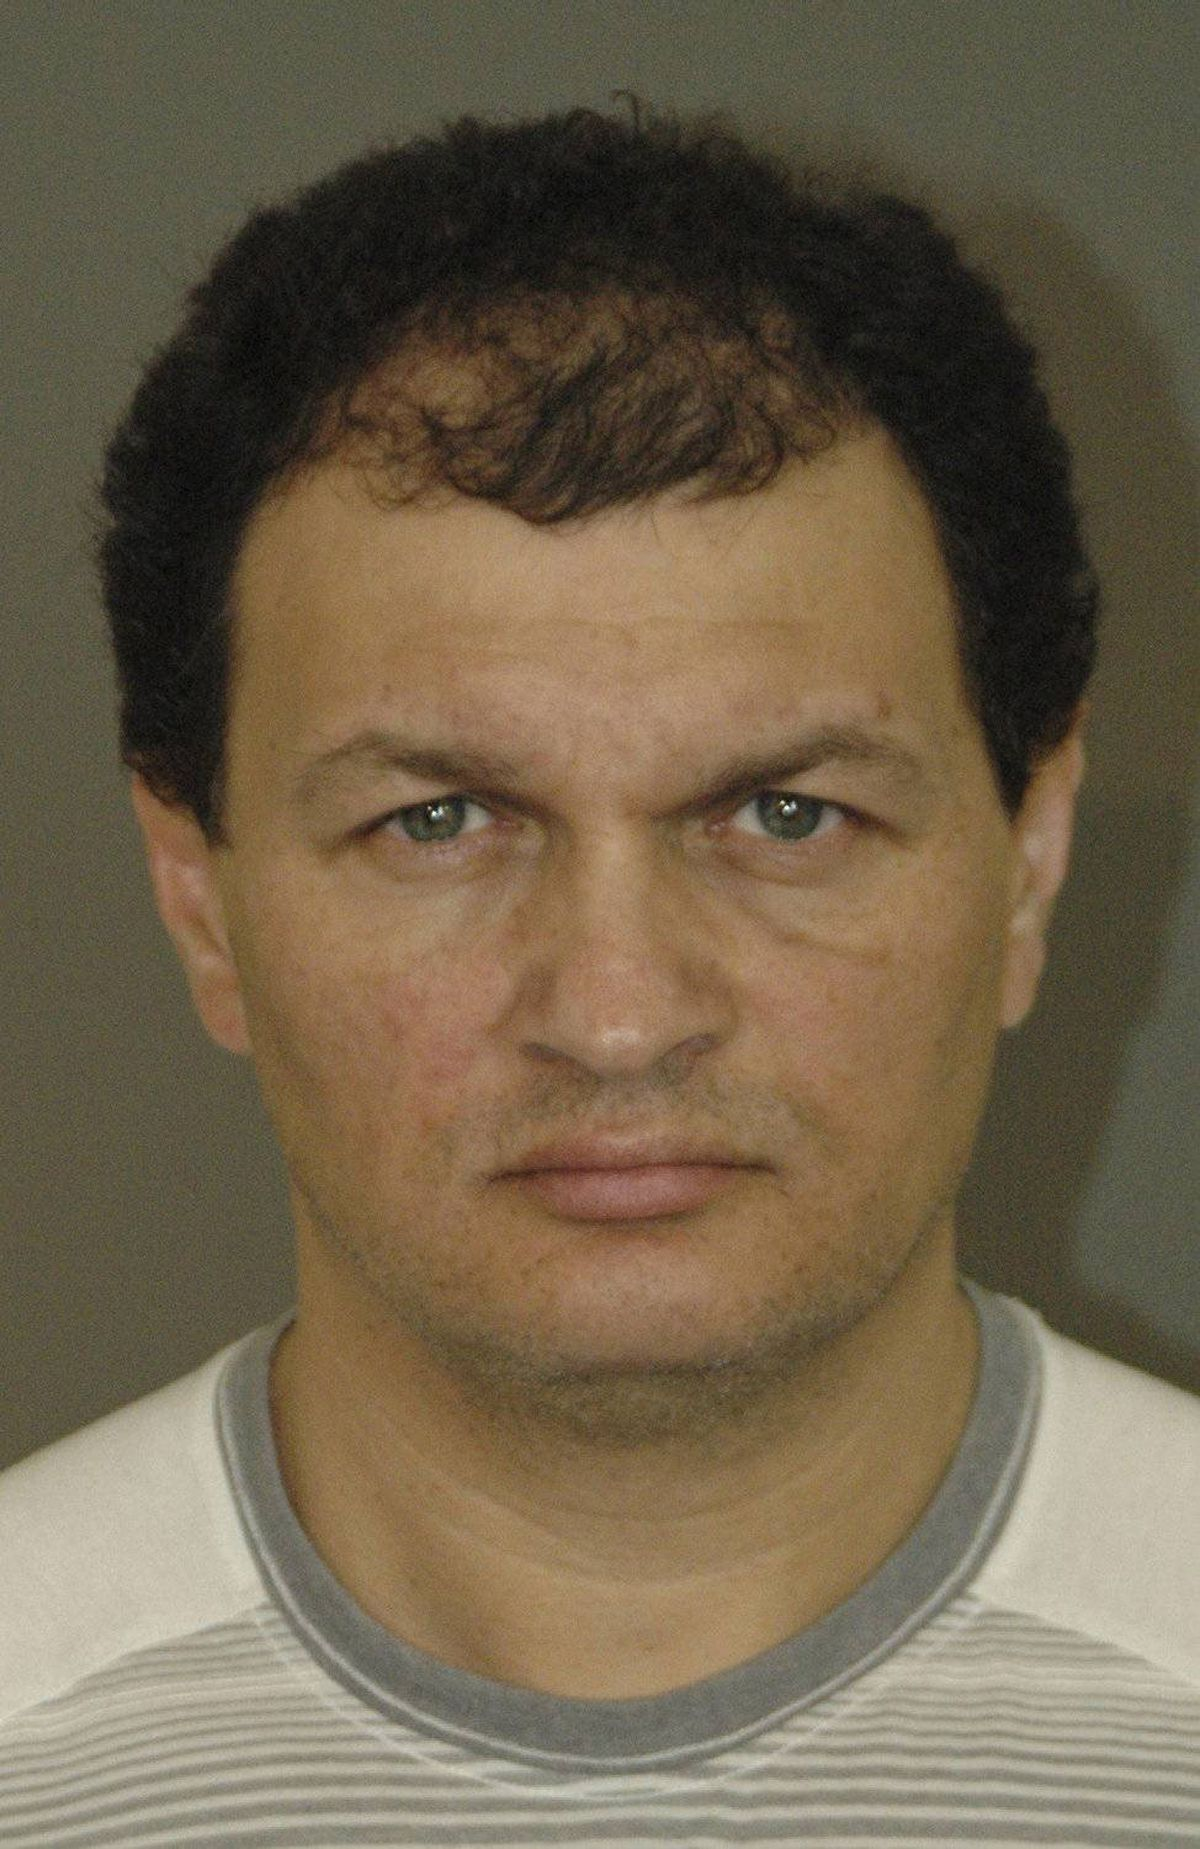 Jozsef Domotor, 45, is Ferenc's brother.